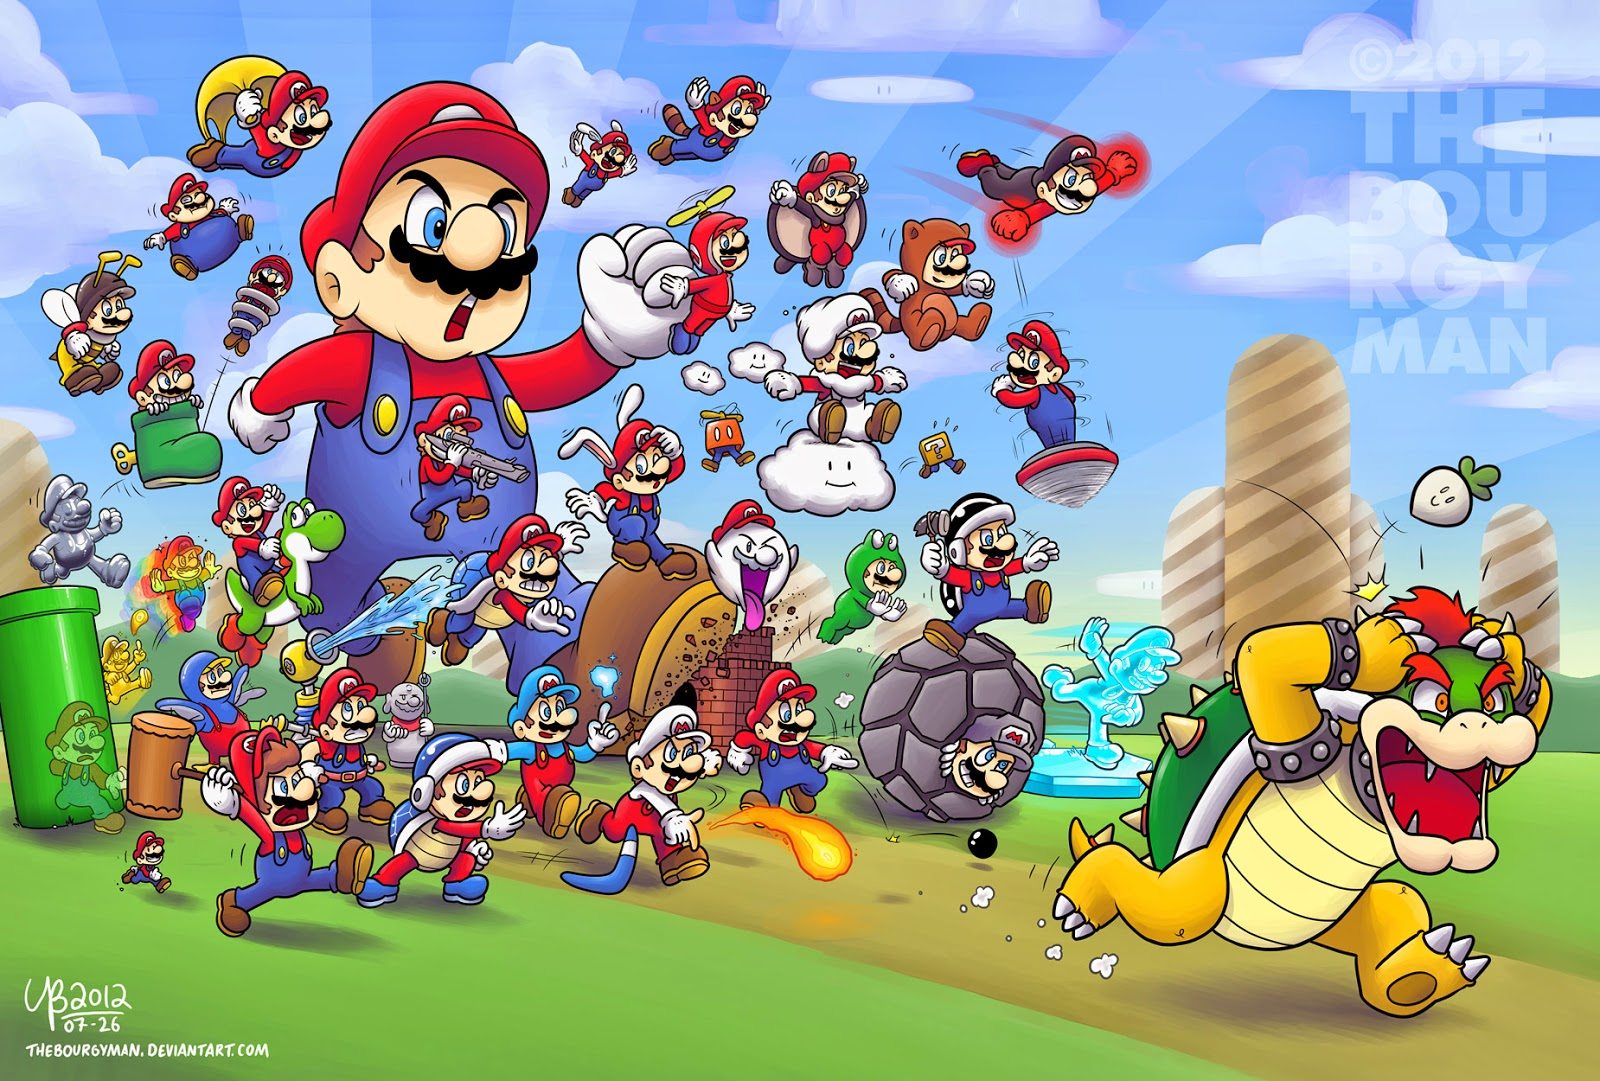 All Mario Power Ups Life Of Turner Ranking The Games